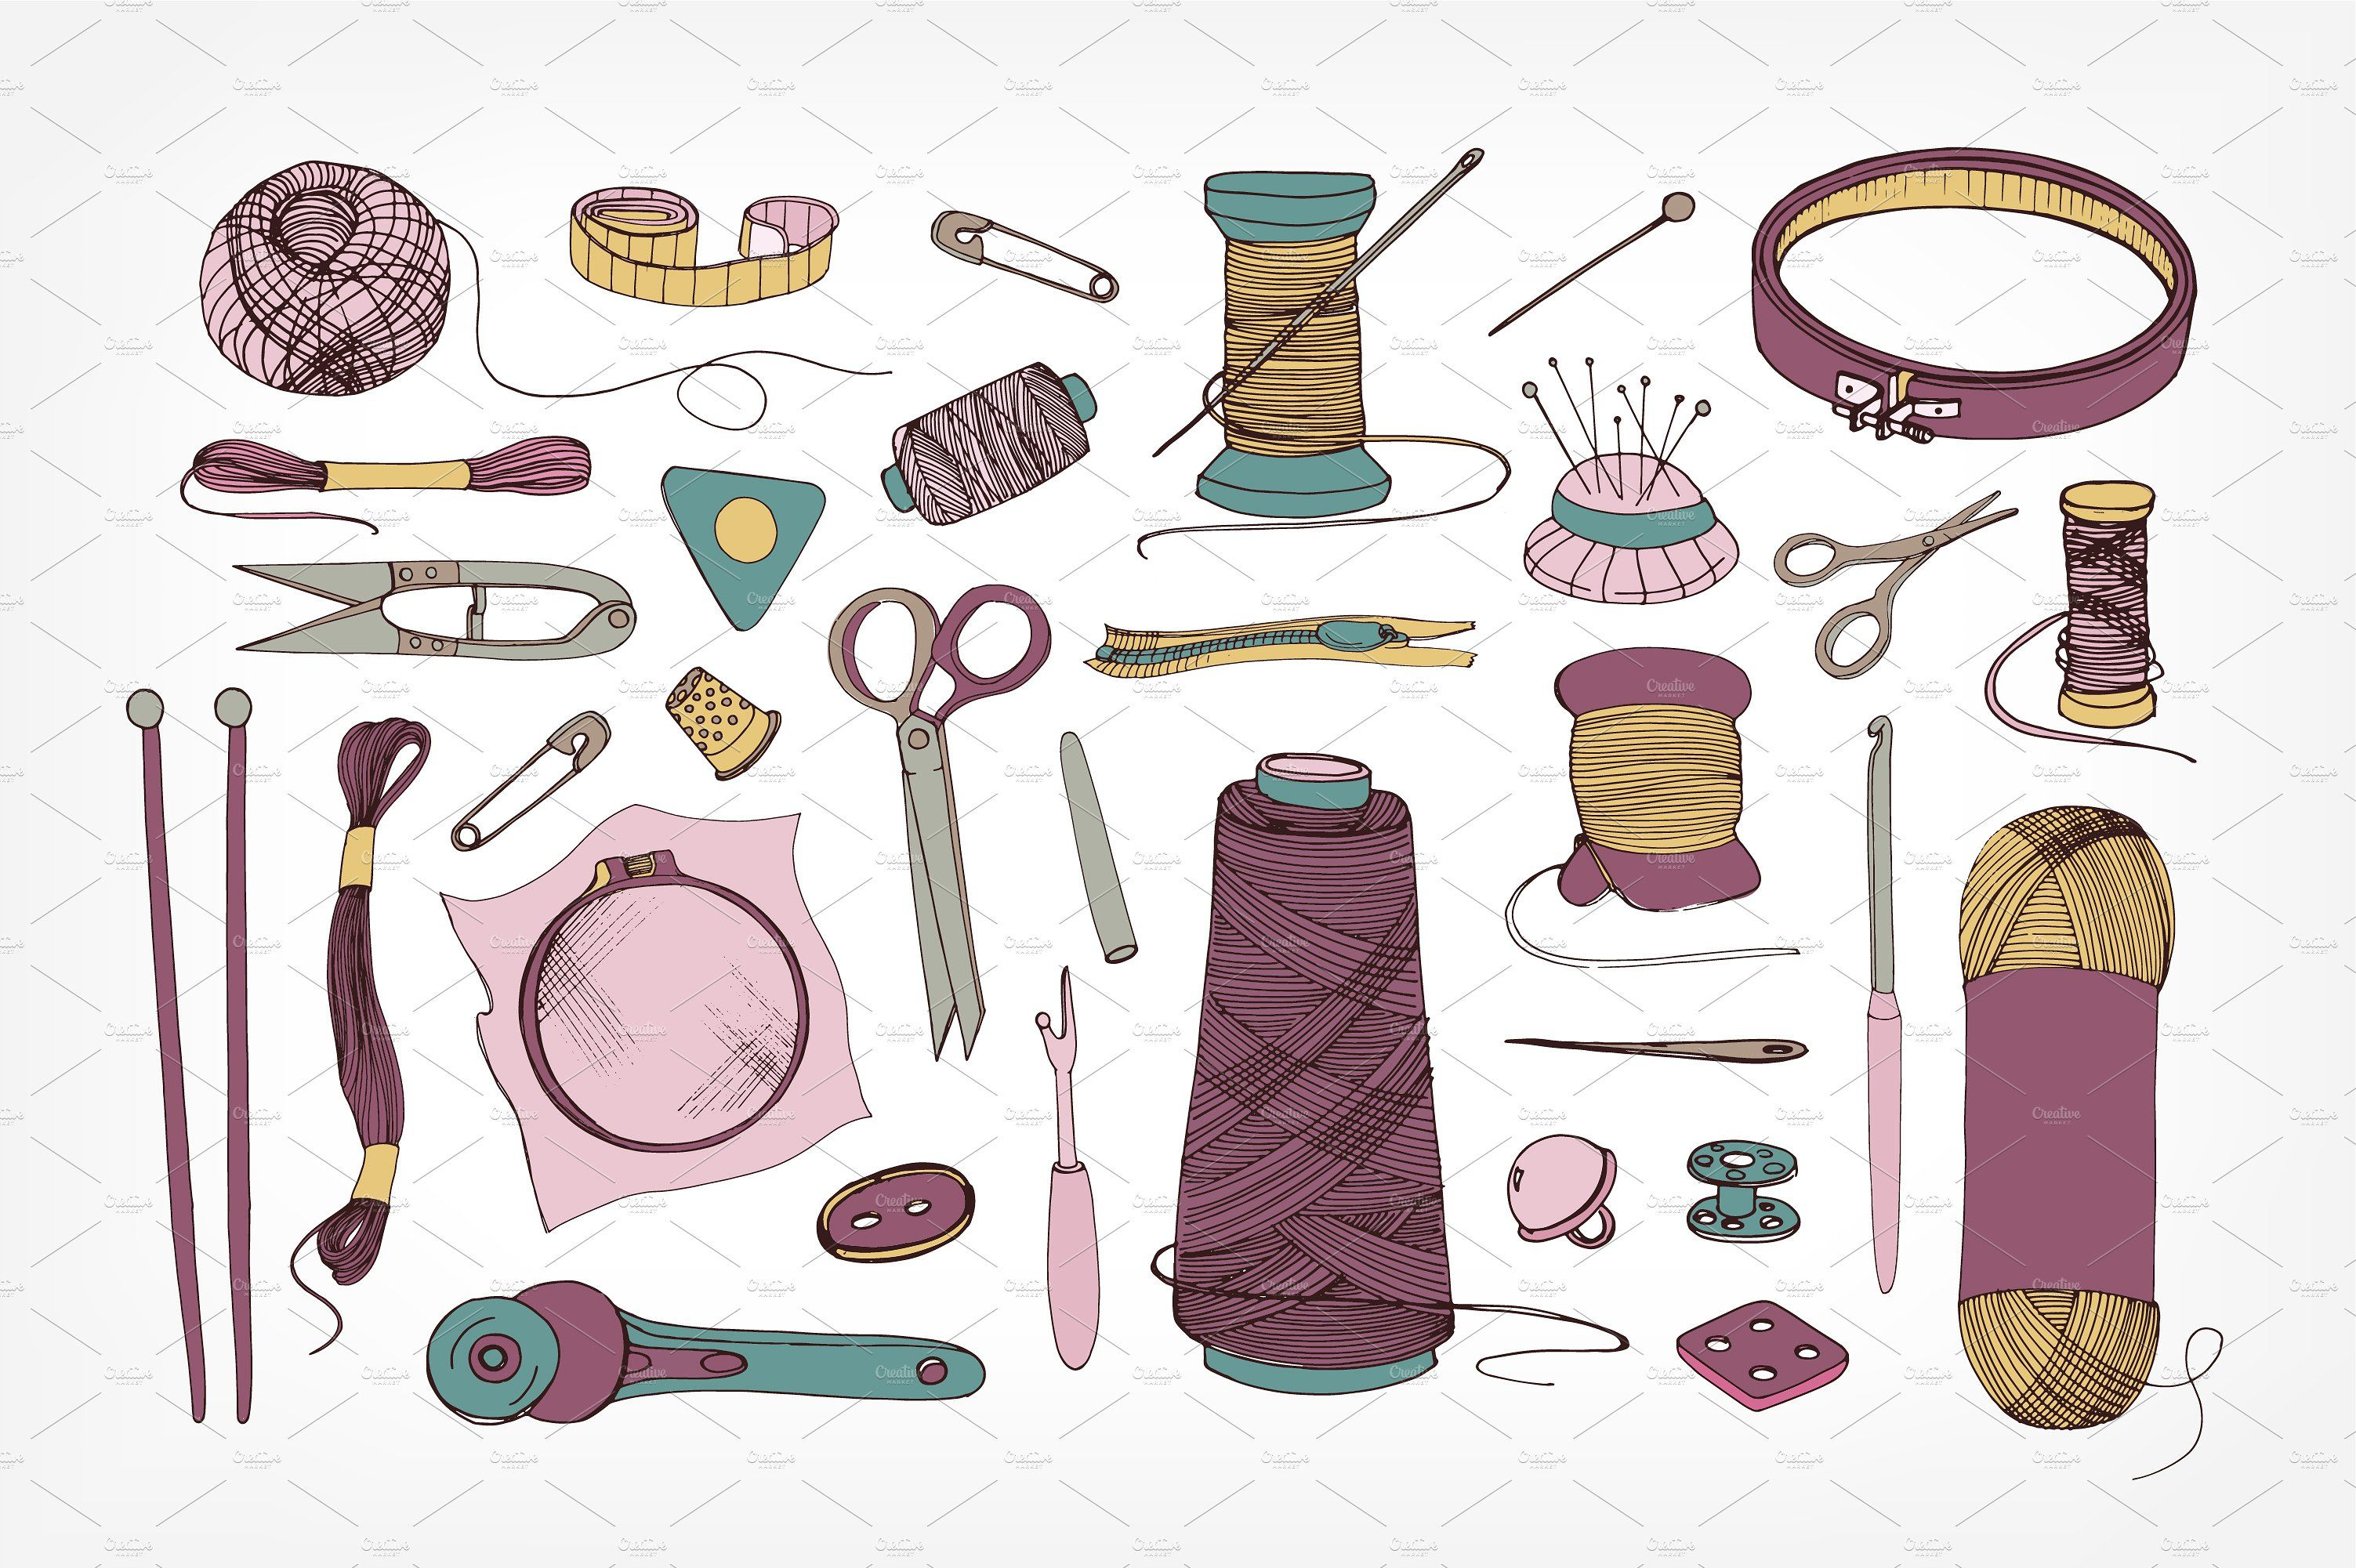 Knitting and sewing accessories #pins#yarn#Scissors#needles.